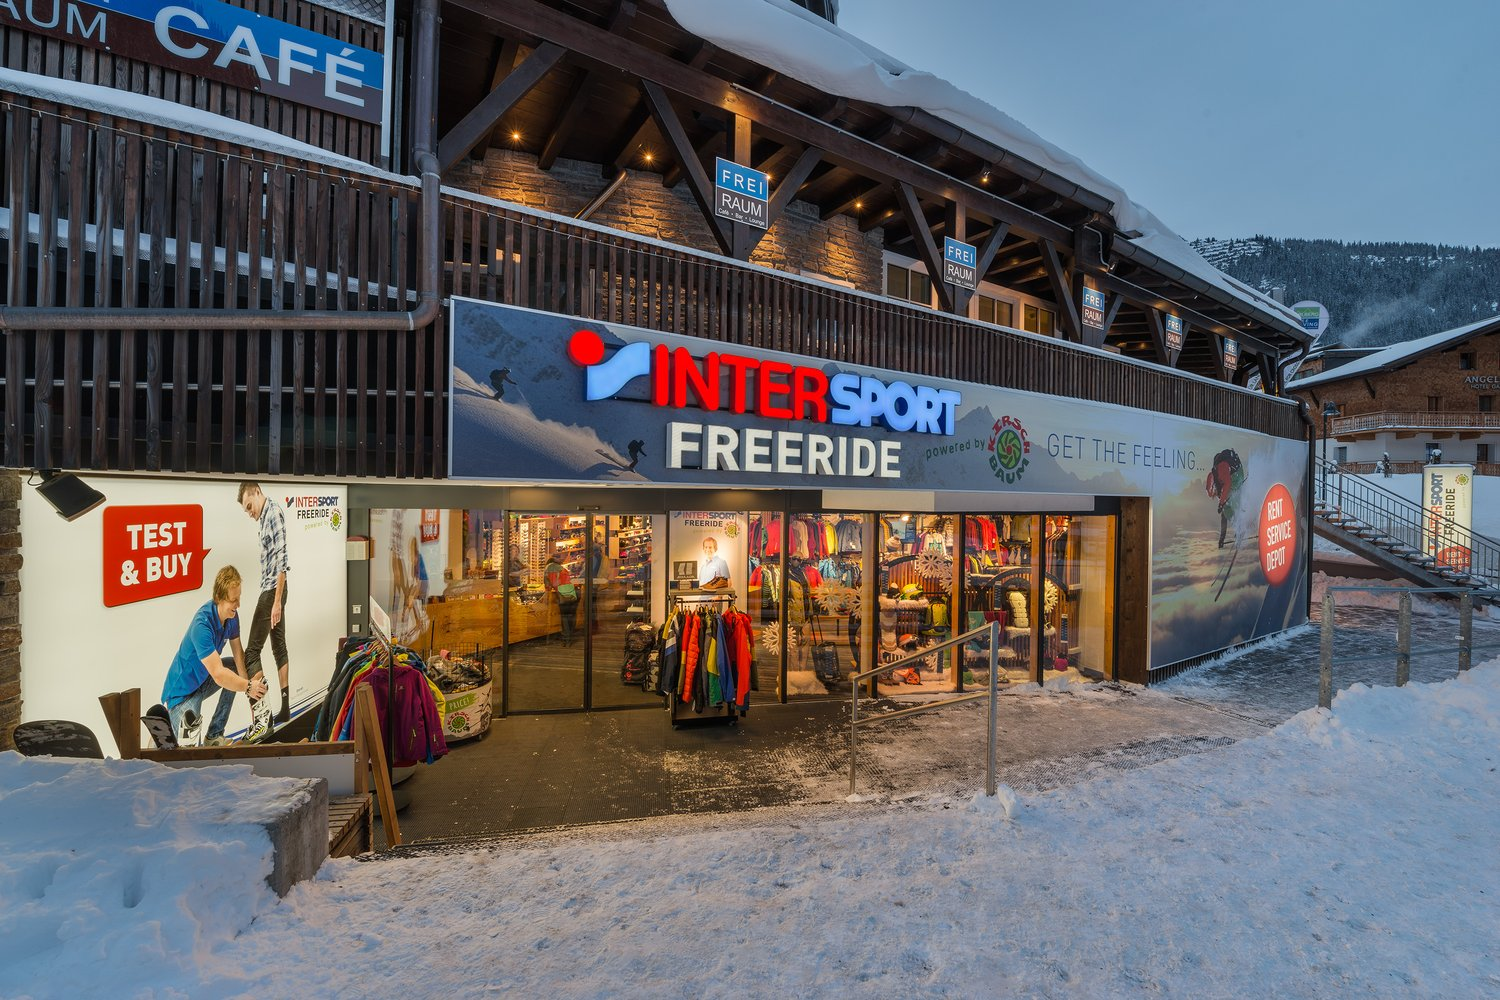 Intersport Freeride